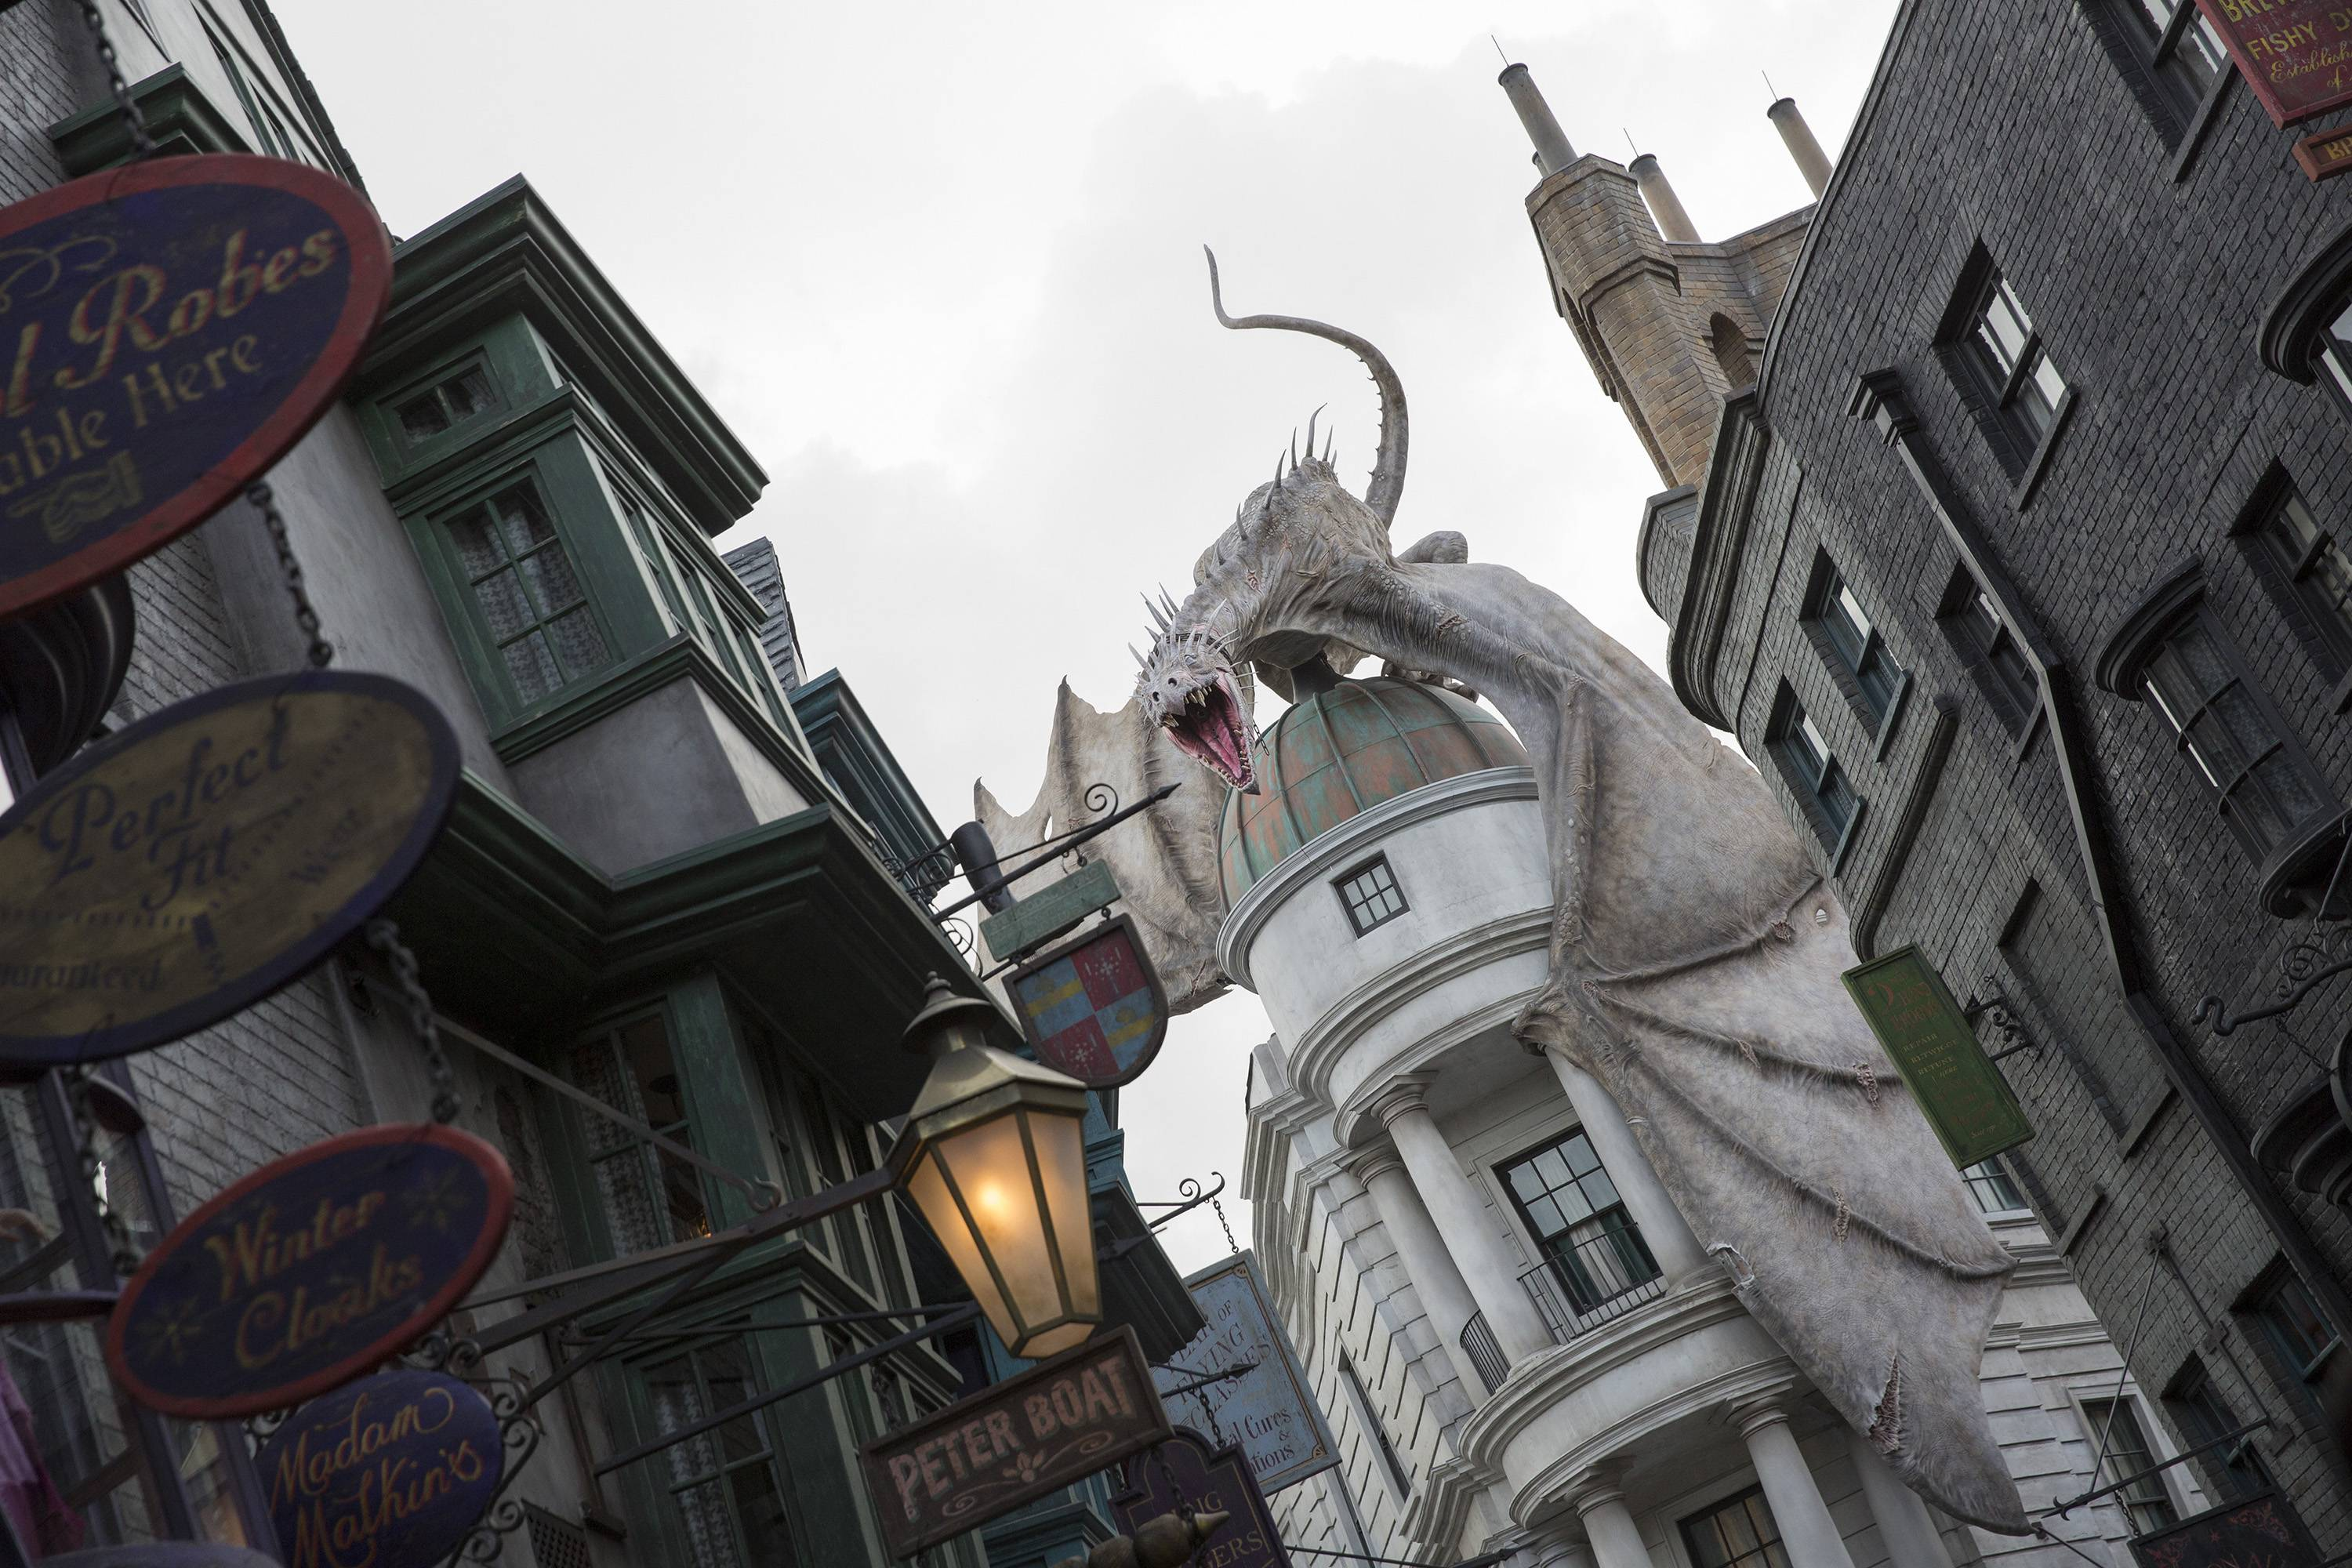 The new Wizarding World of Harry Potter -- Diagon Alley at Universal Orlando features shops, dining experiences and a next generation thrill ride. It will officially open on July 8.